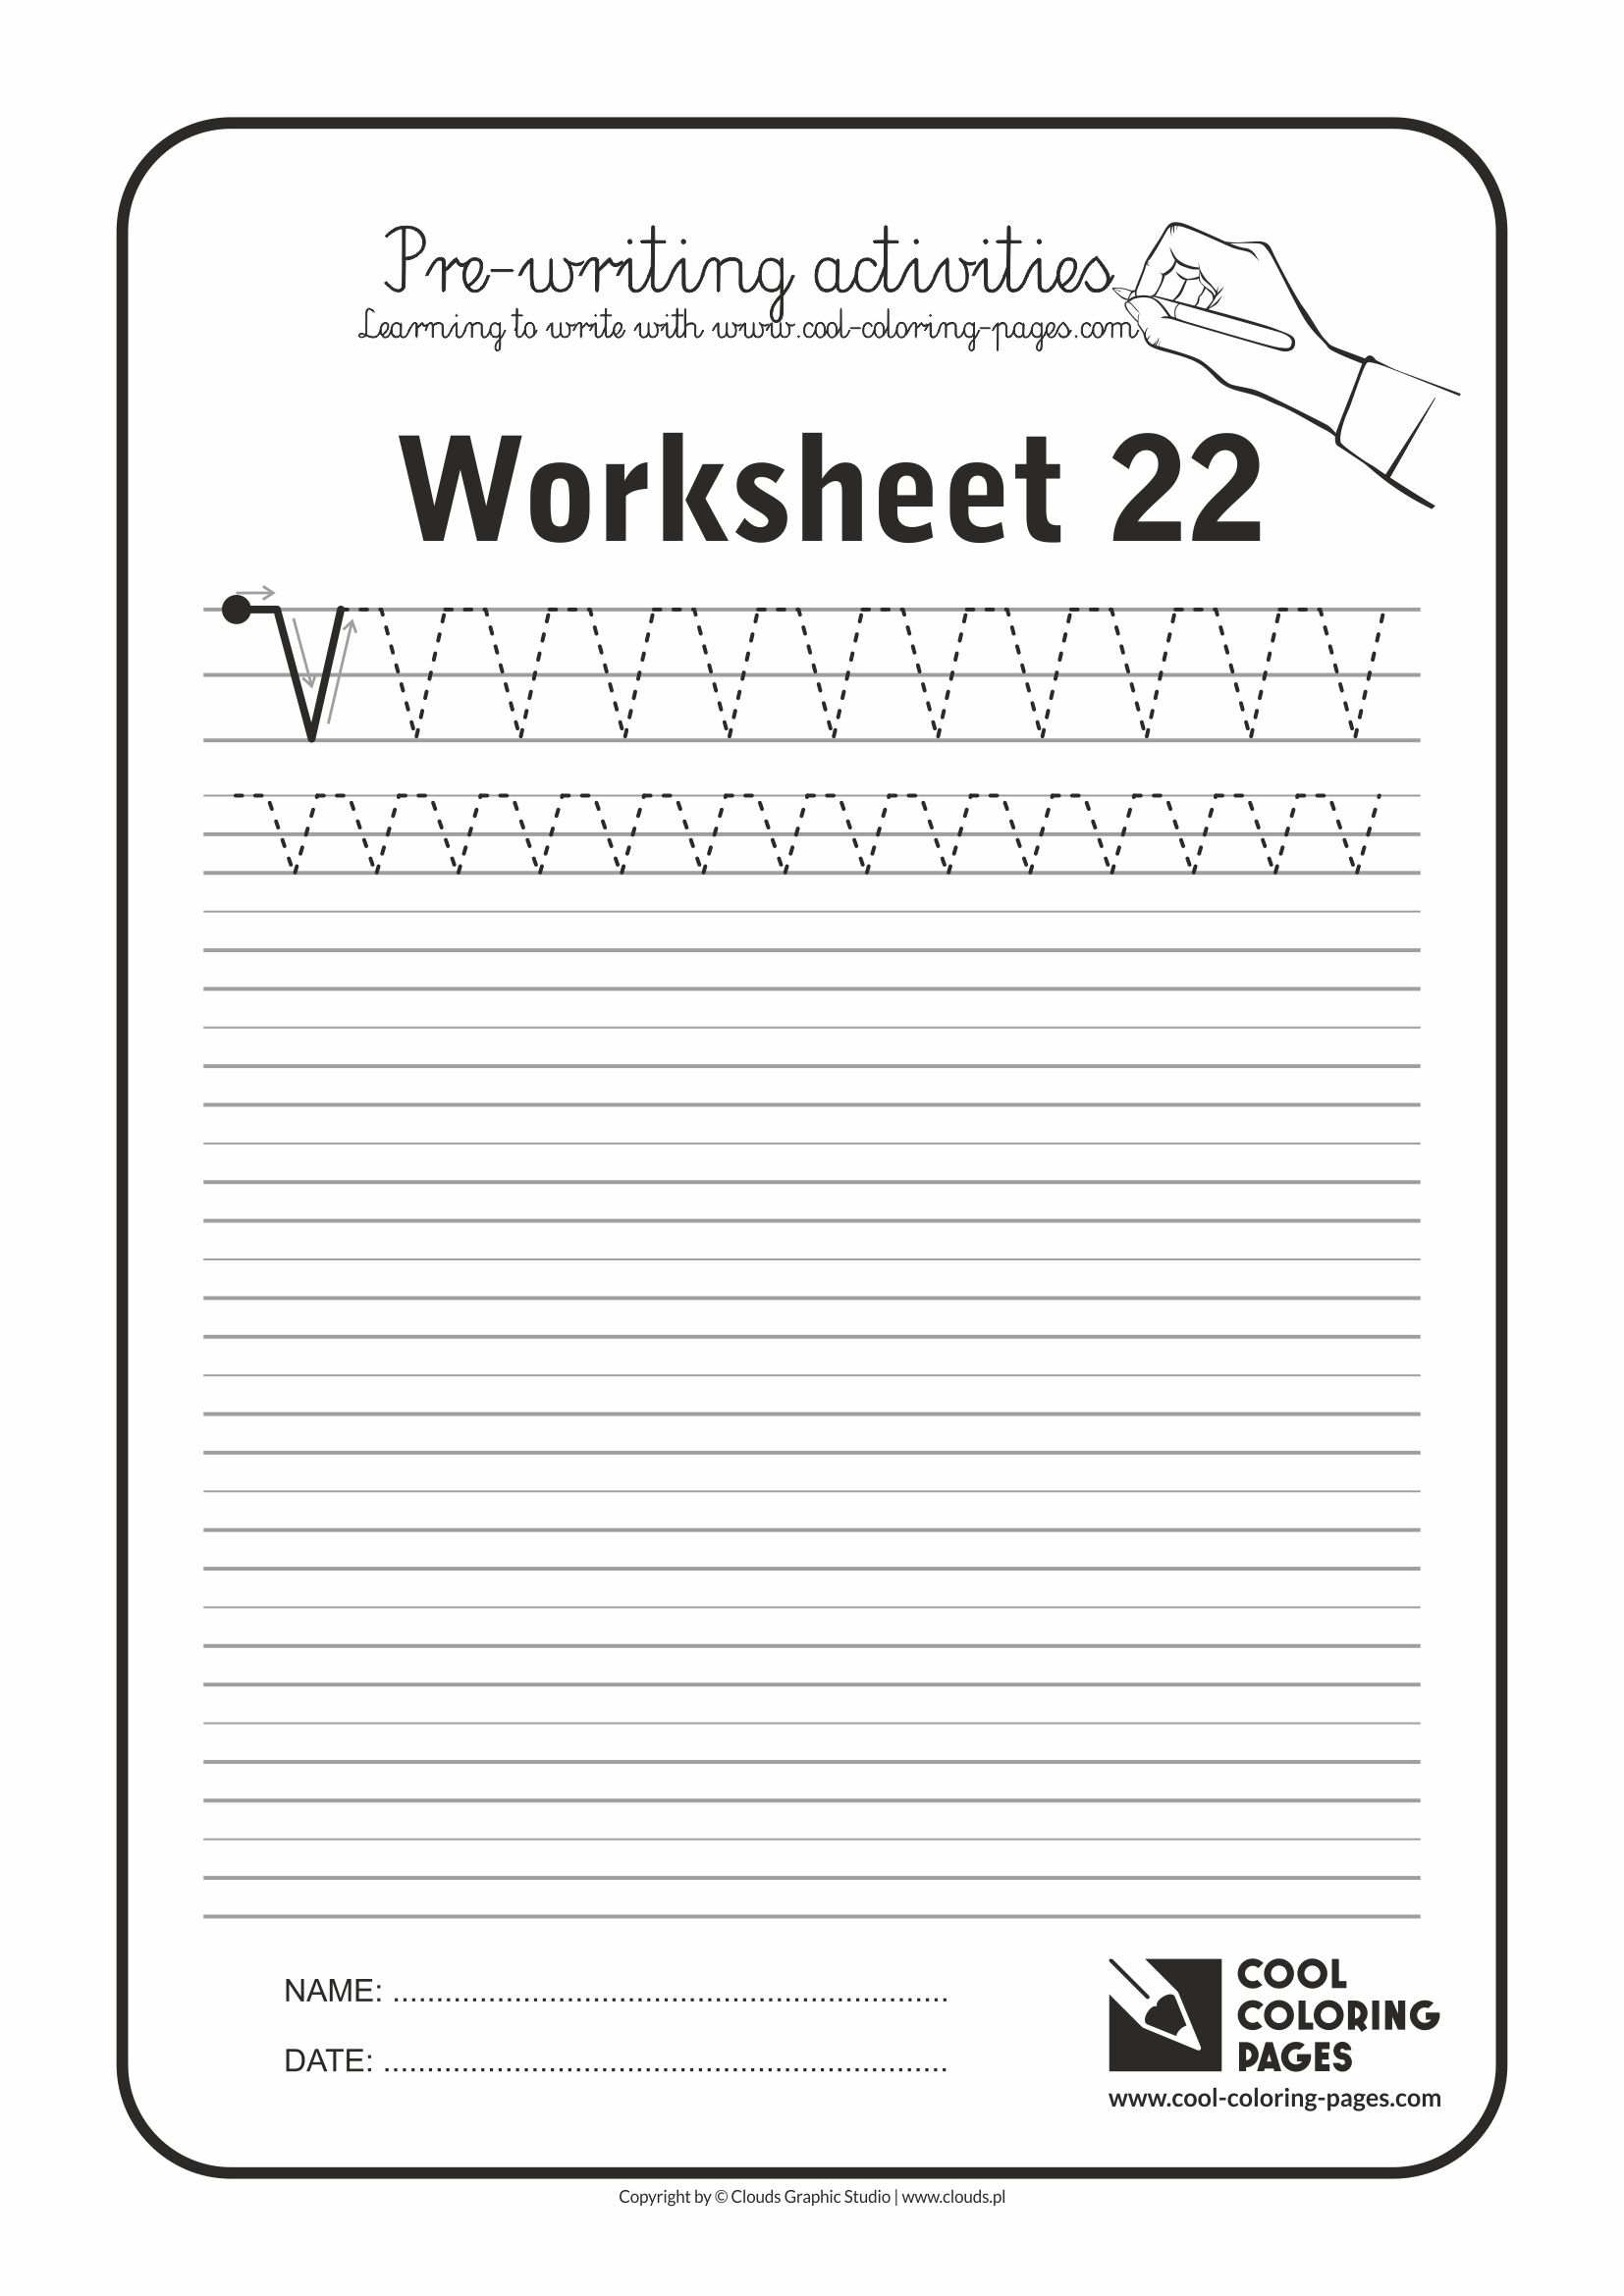 Cool Coloring Pages / Pre-writing activities / Worksheet no.22